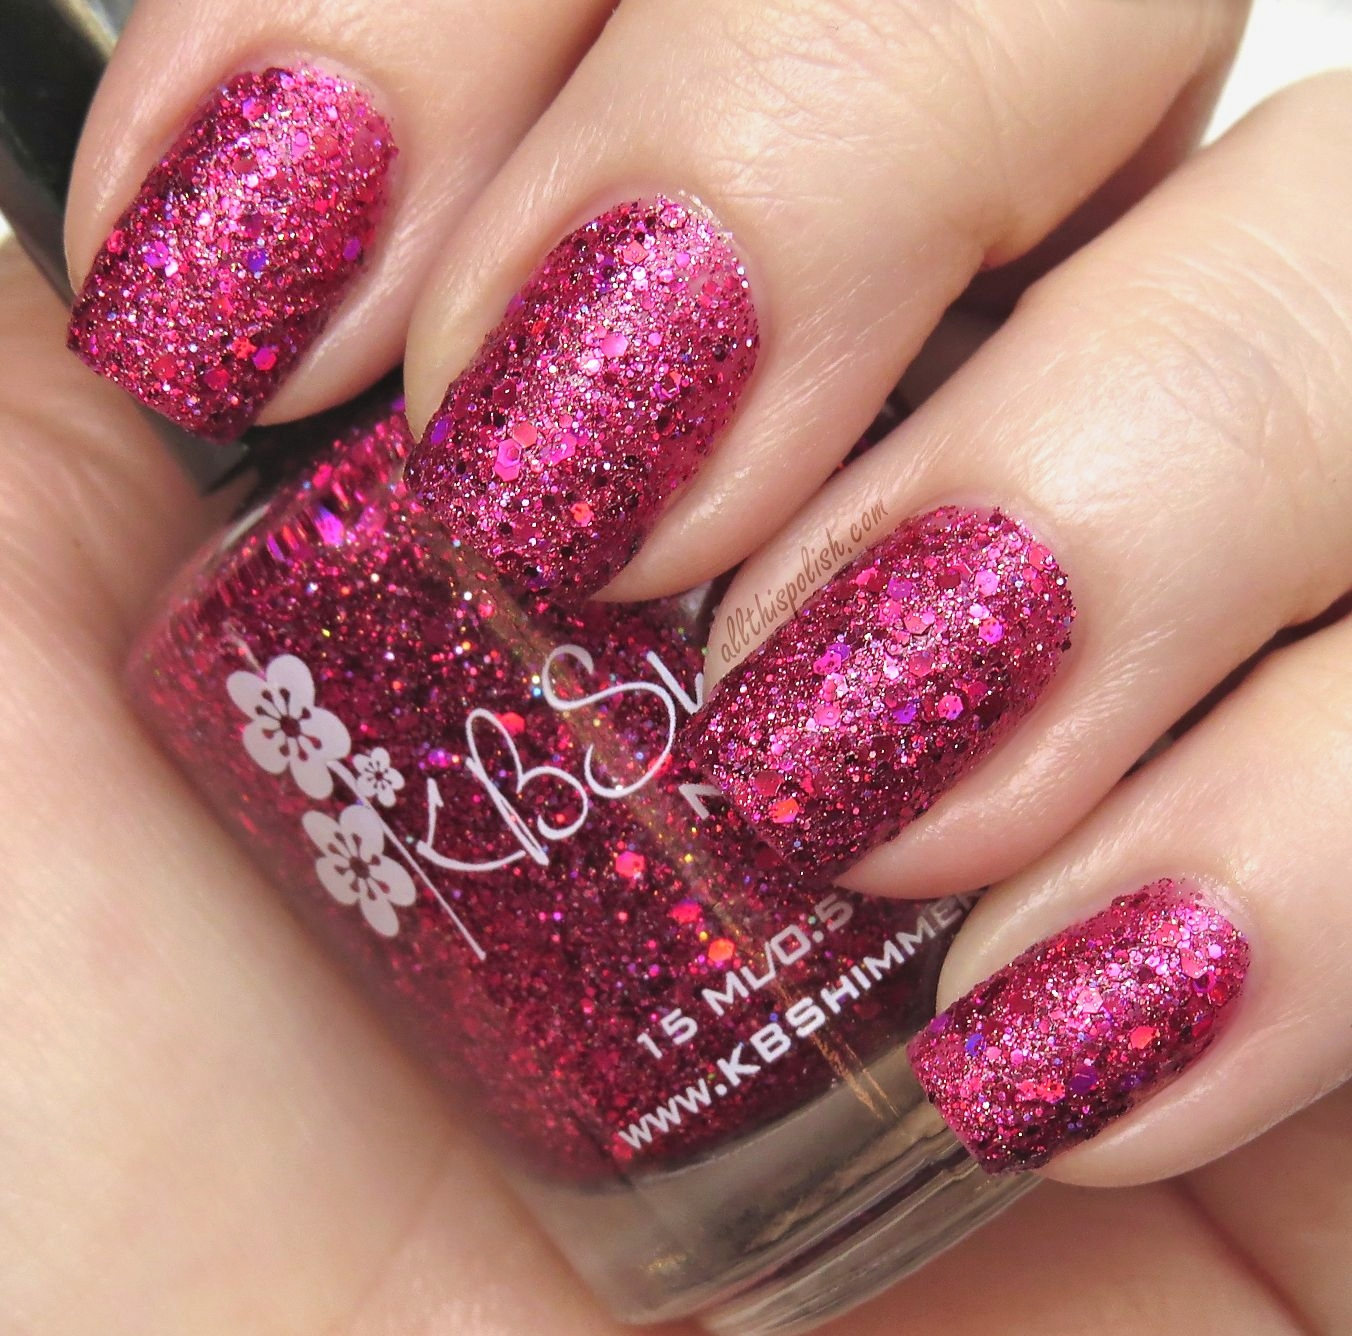 KBShimmer Turnip The Beet